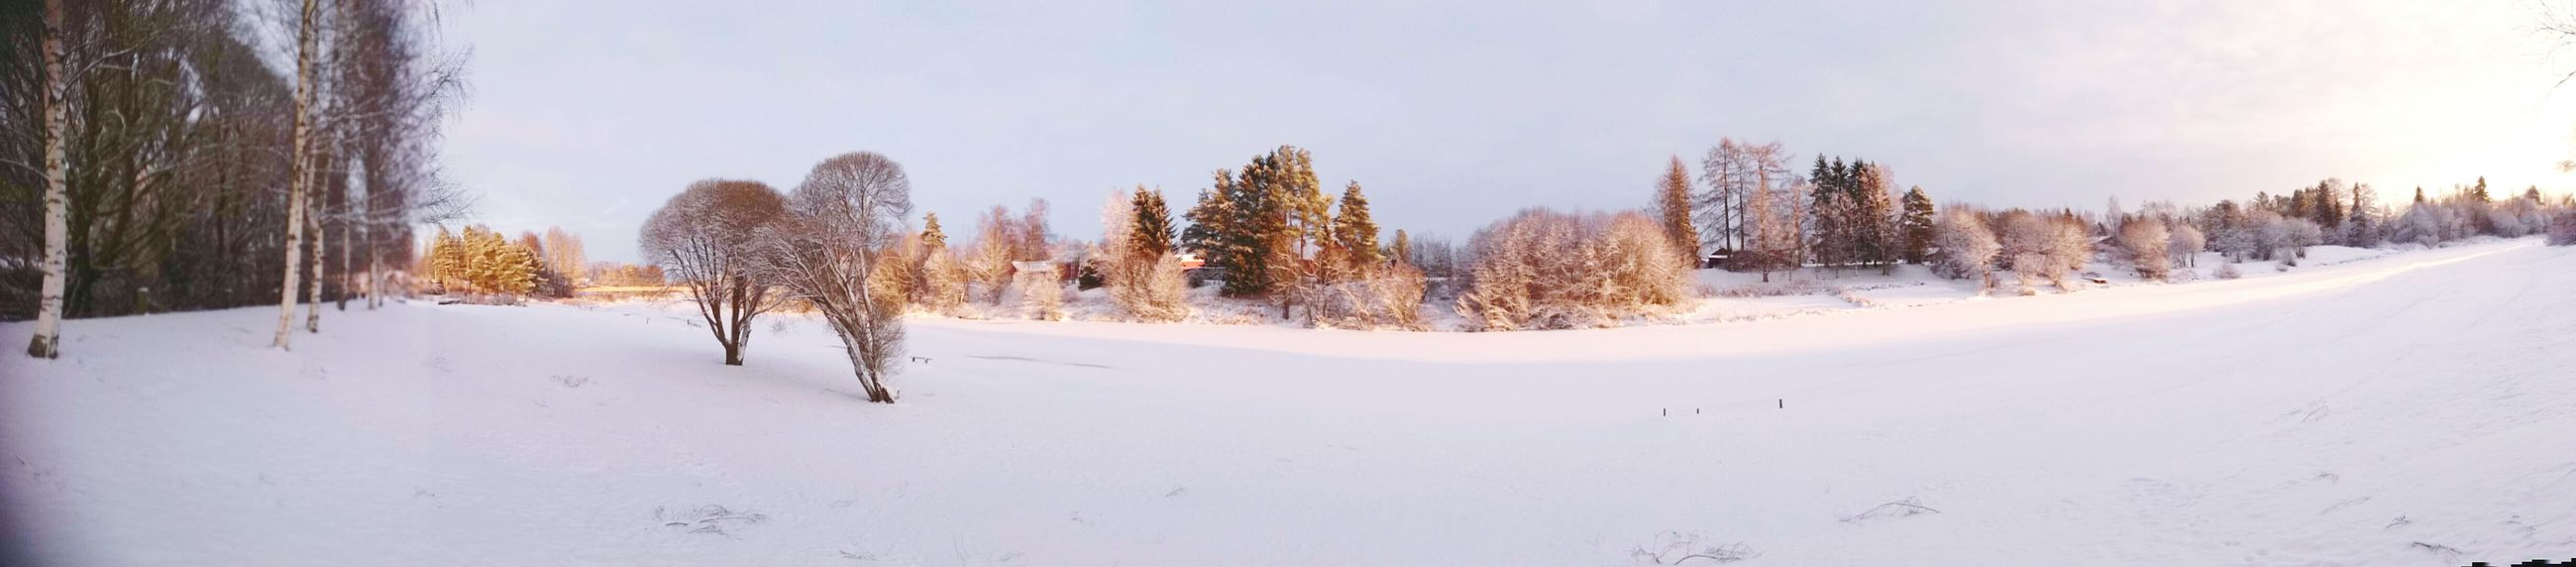 """Last winterfrom my """"place"""" Cold TemperatureEyeEm Selects Snow Winter Frozen Nature Panoramic EyeEmNewHere Eyes Closed  Sonyz3 Travelling Photography Pinaceae Pine Tree Forest Tree Wrapped Snowcapped Mountain Polar Climate Fog Snowing Mountain Outdoors Cloud - Sky Tree Area Beauty"""